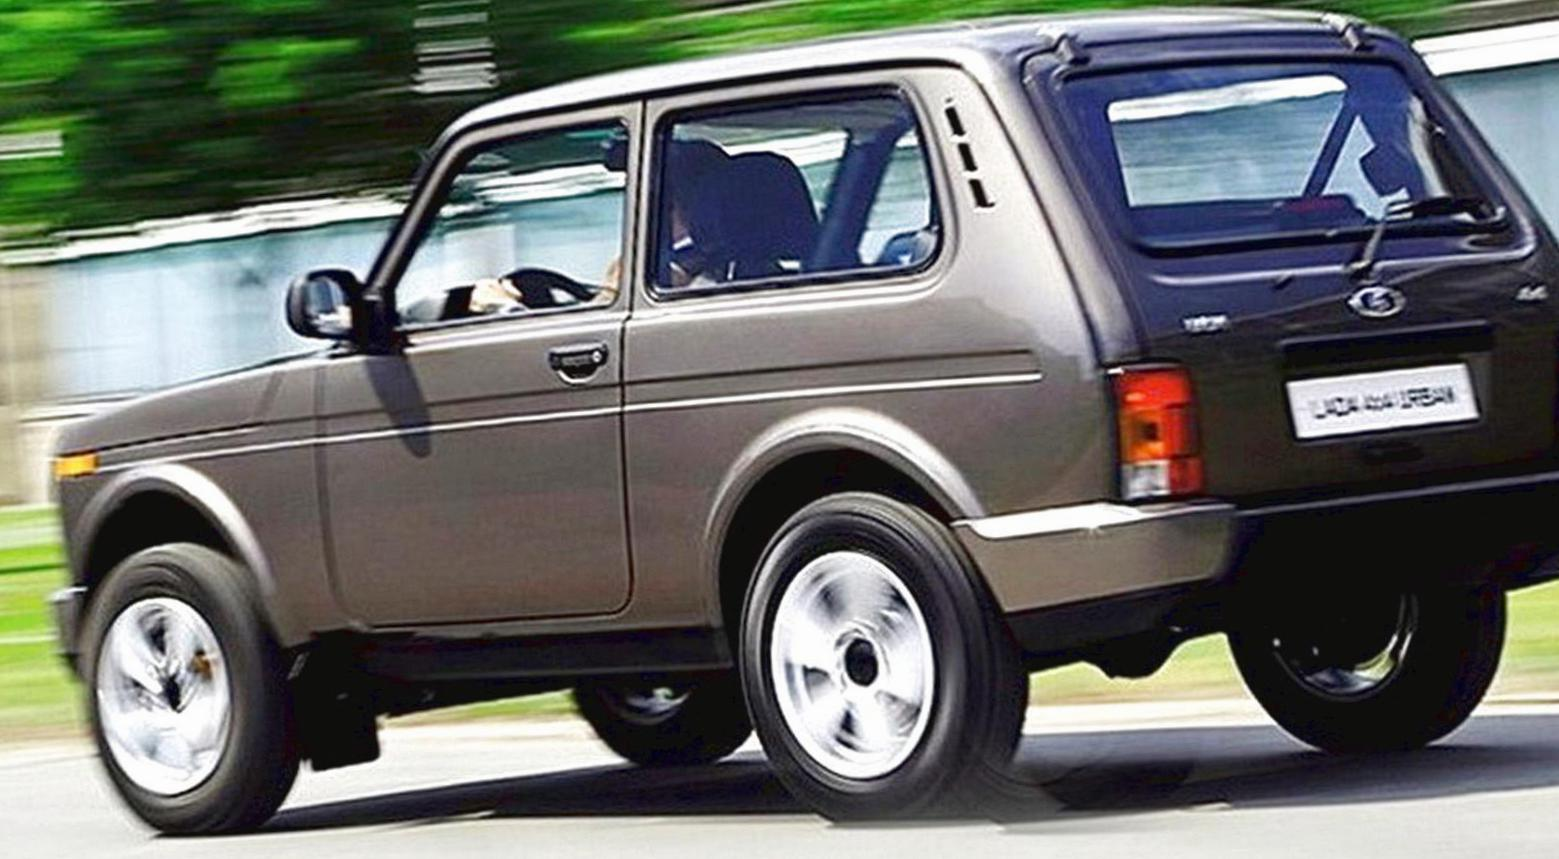 VAZ-21053: photo and description, specifications, tuning 59